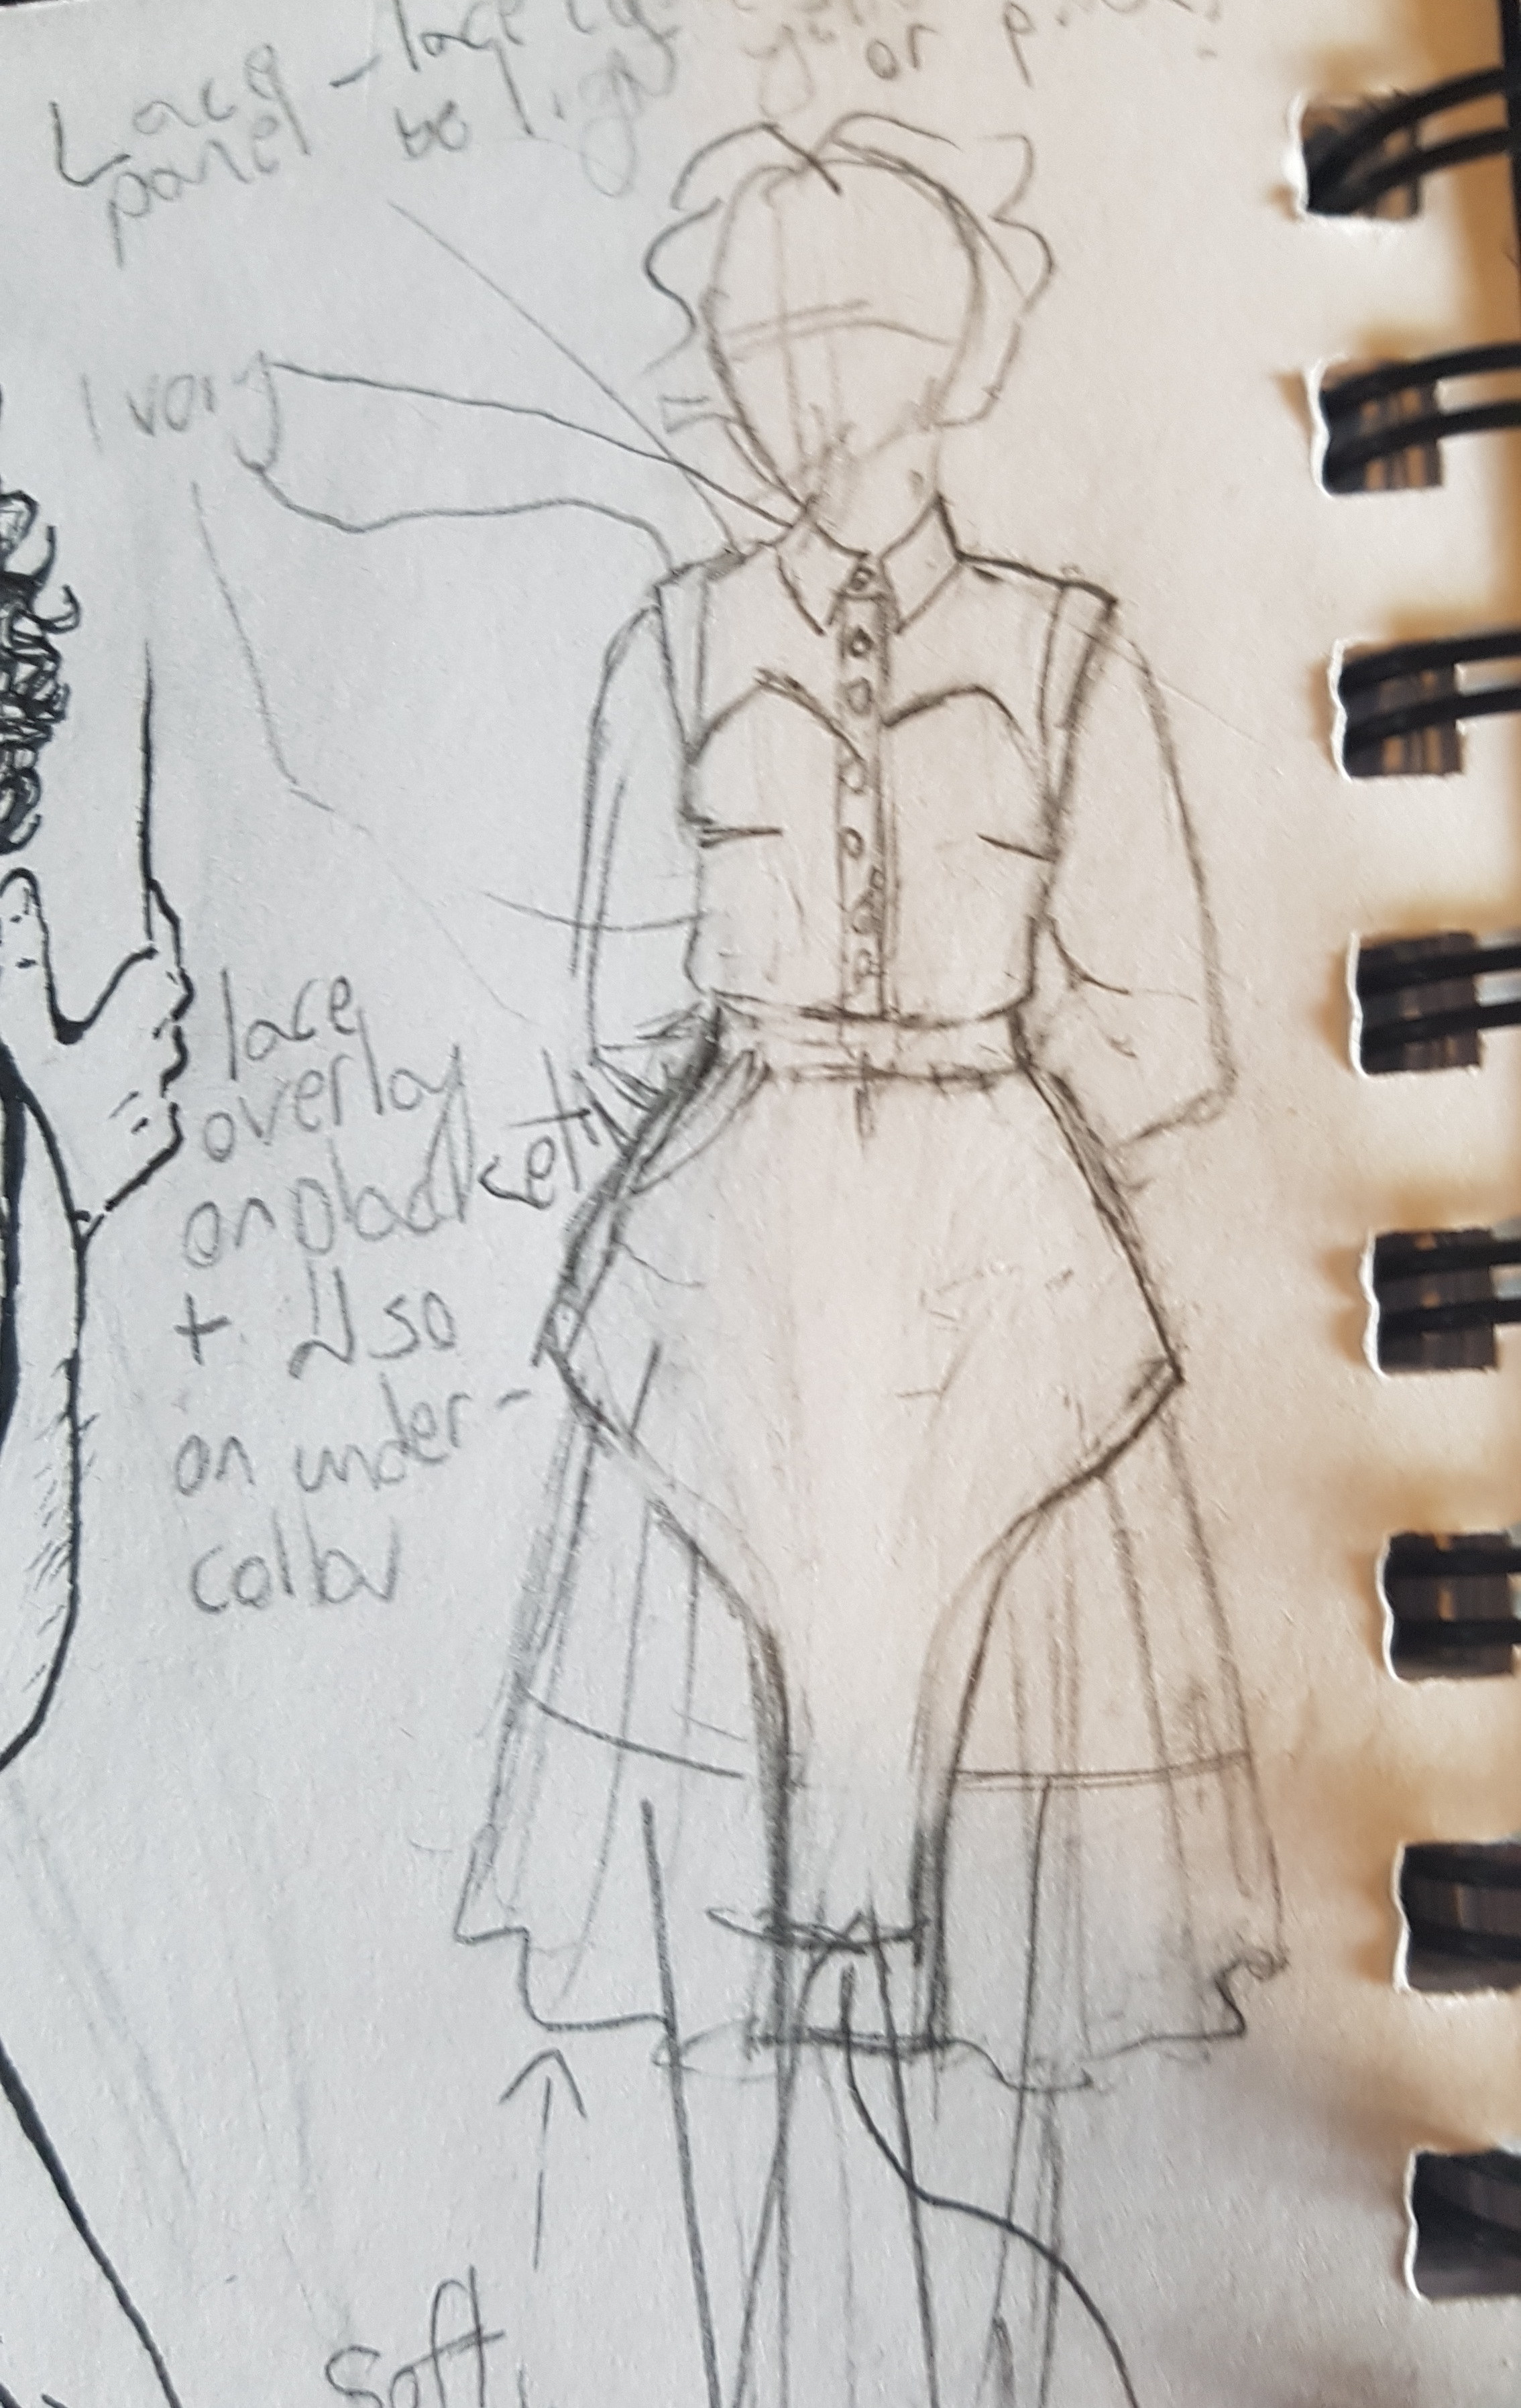 Caption: Another excerpt from my sketchbook; this time, it's a close-up of the front of the Amelia skirt. The sketch model has their arms behind their back, a sweetheart neckline blouse with no sleeves, and the skirt hem ends a bit above the knee.